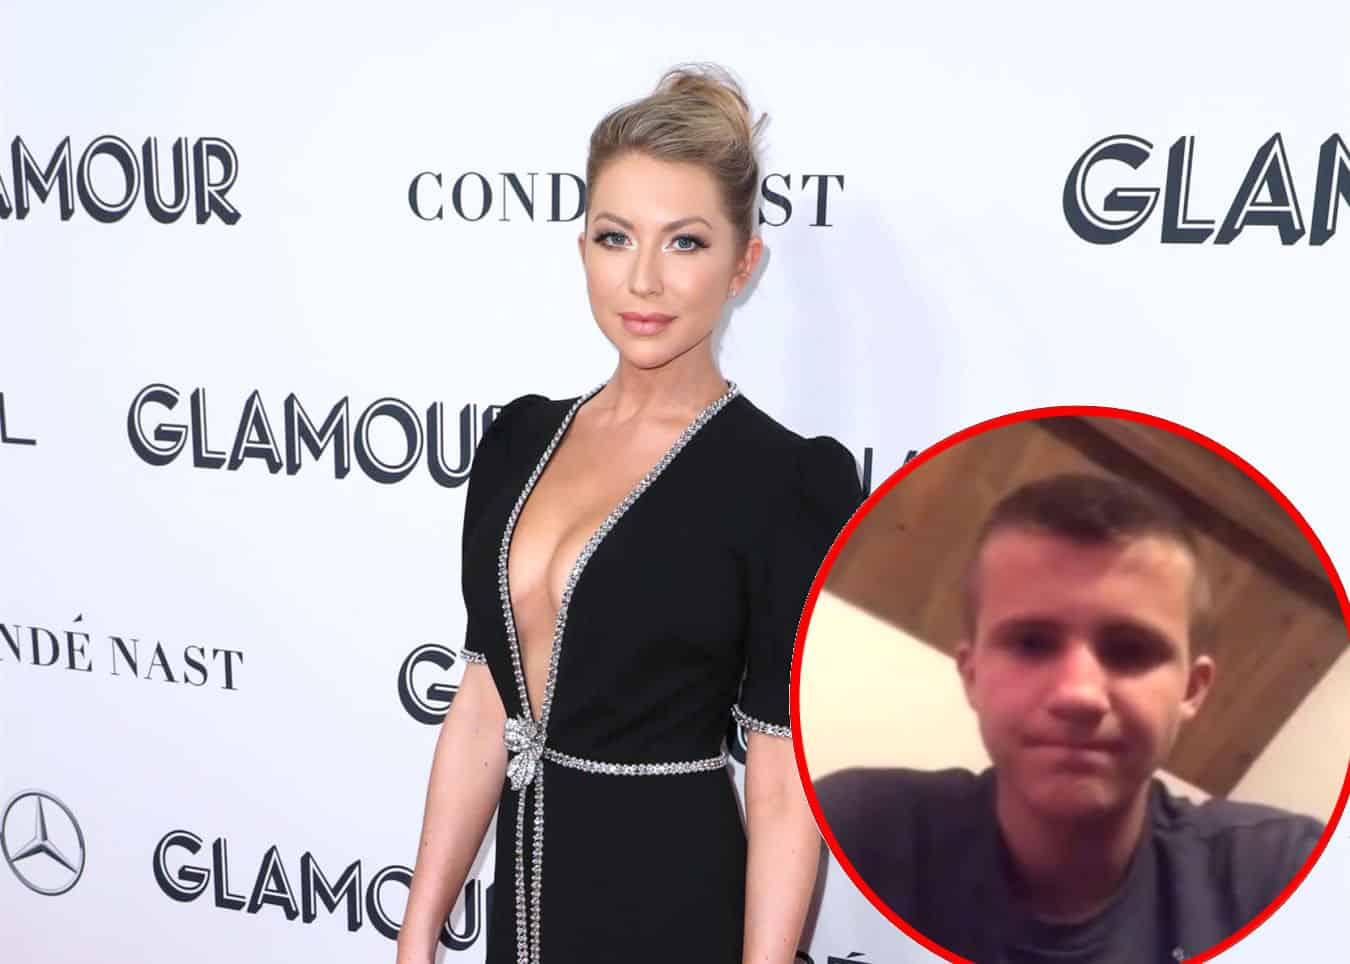 Stassi Schroeder's Brother Nikolai Begs Faith Stowers to Help Stassi Get Her Job Back After Vanderpump Rules Firing as Brett Caprioni Breaks Silence Following Exit